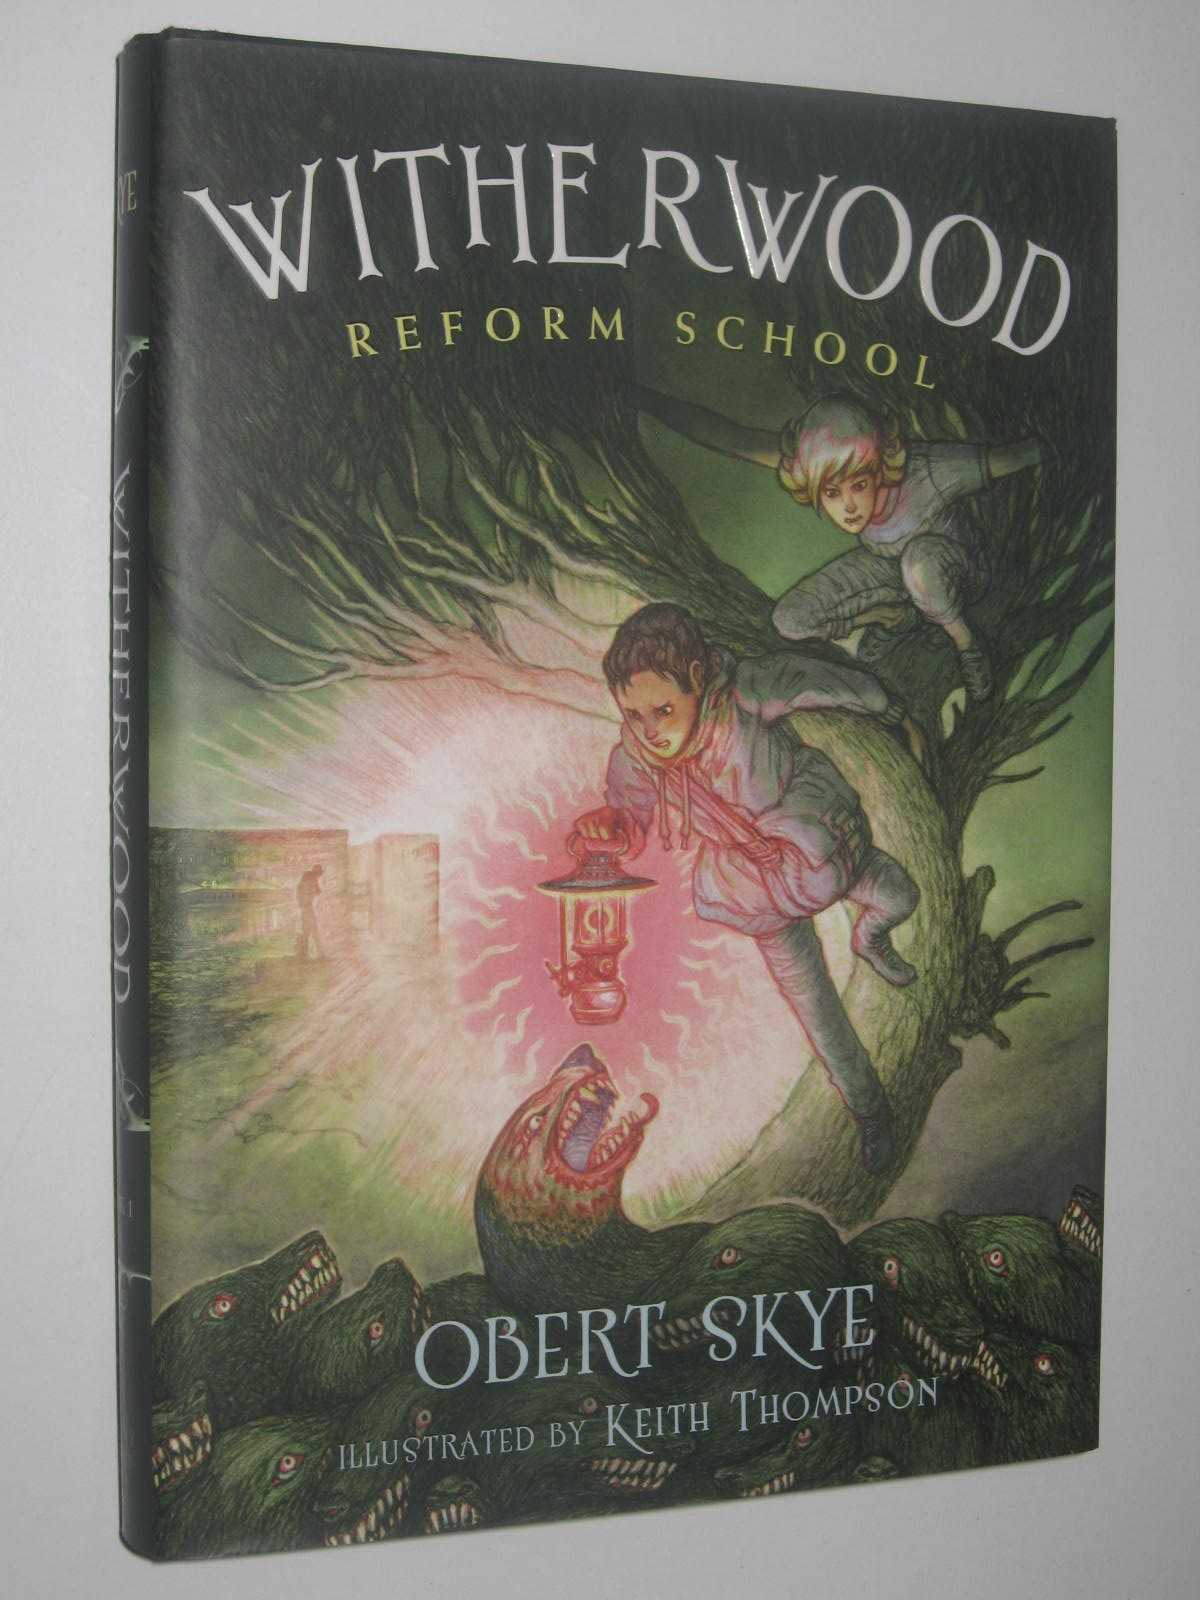 Image for Witherwood Reform School - Witherwood Reform School Series #1